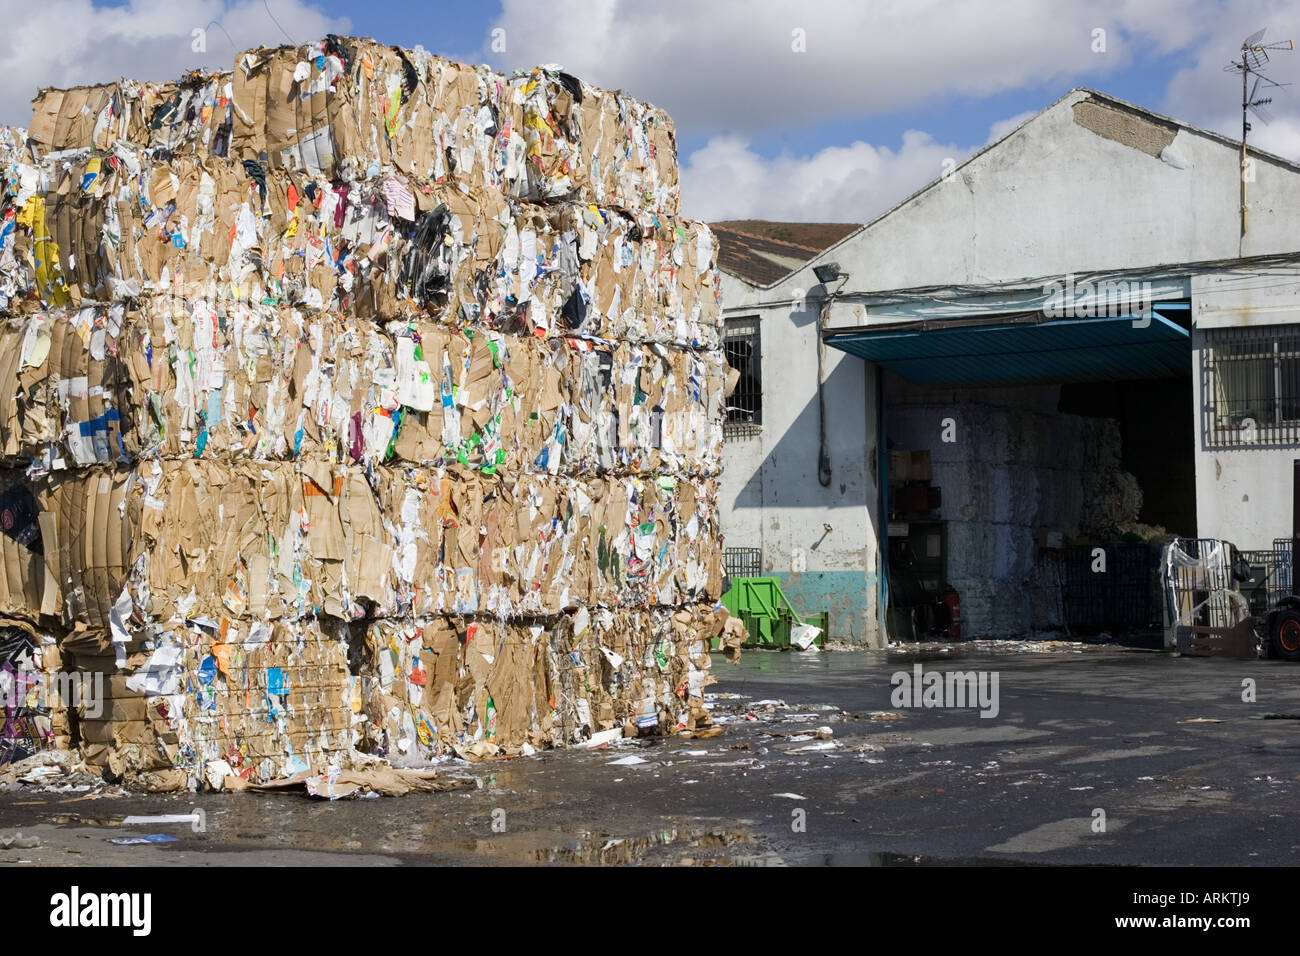 Bales of waste paper and cardboard cartons stacked awaiting